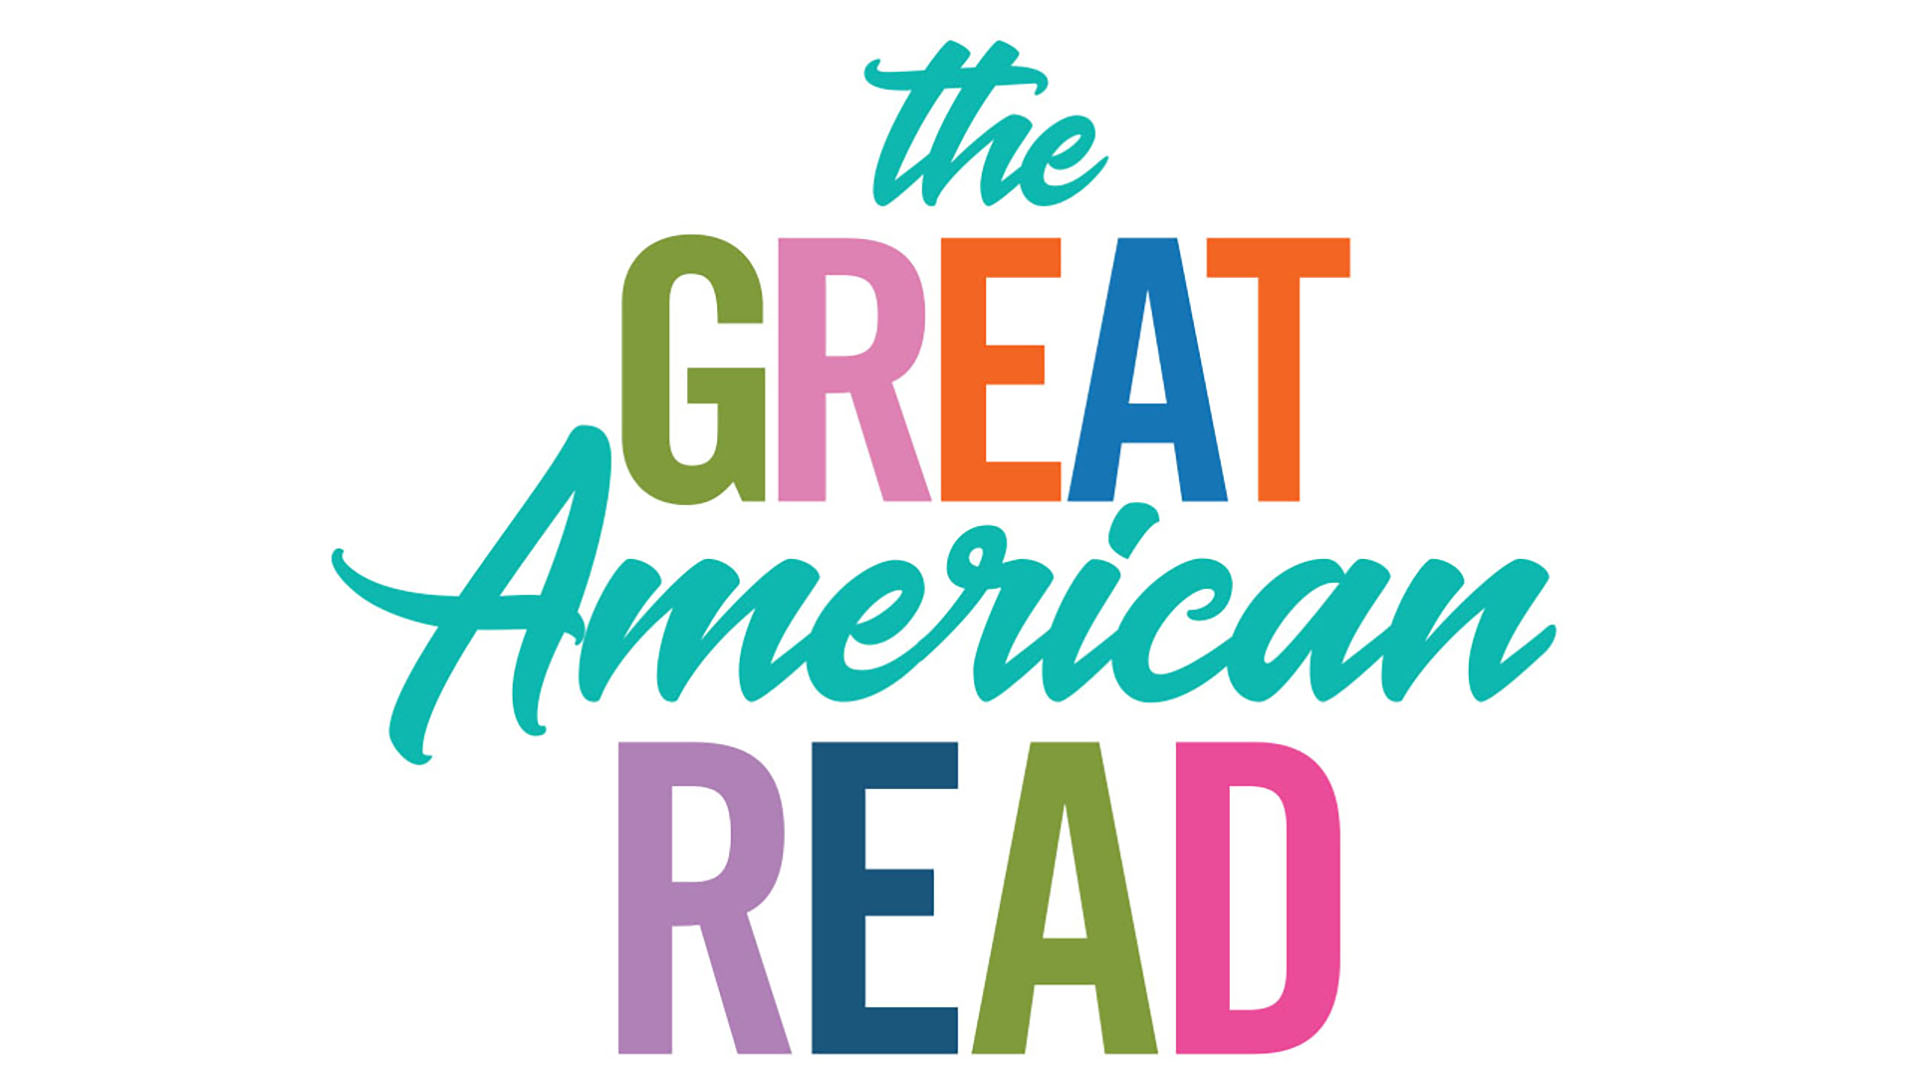 Sign up now for Great American Read trivia night